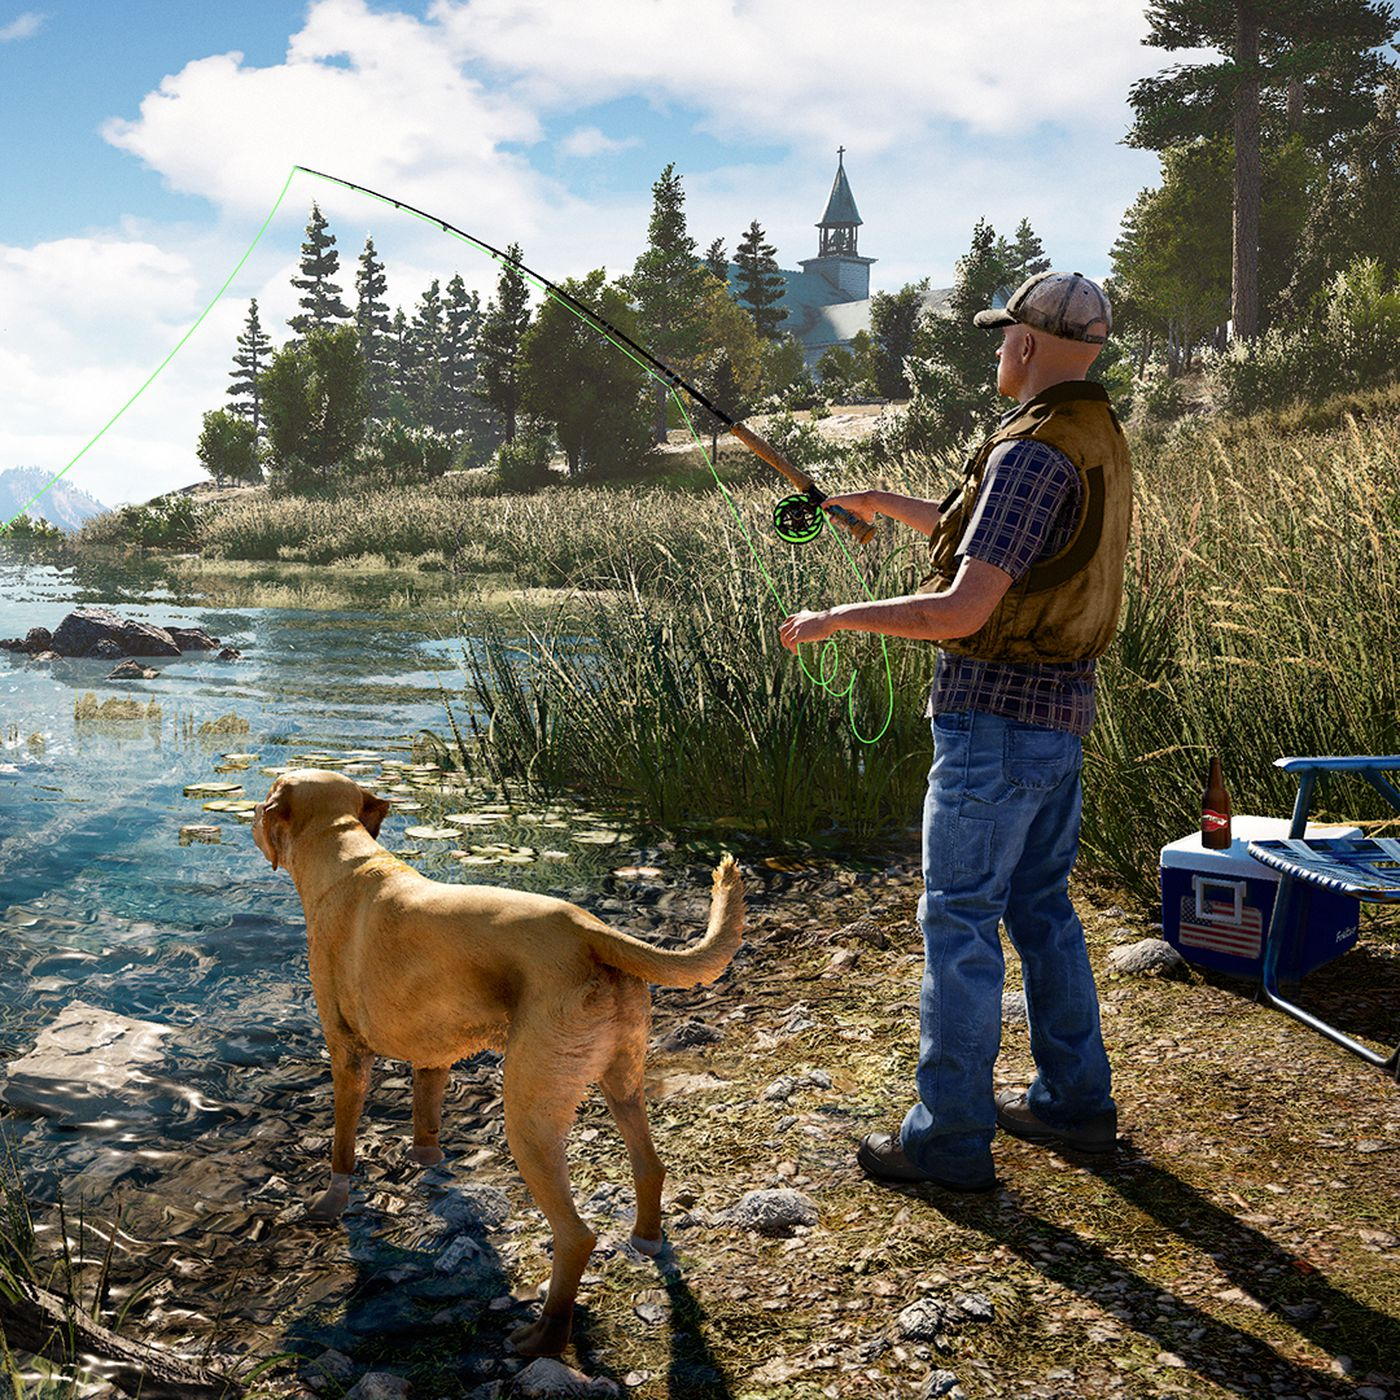 Far Cry 5's campaign is playable entirely in co-op (update